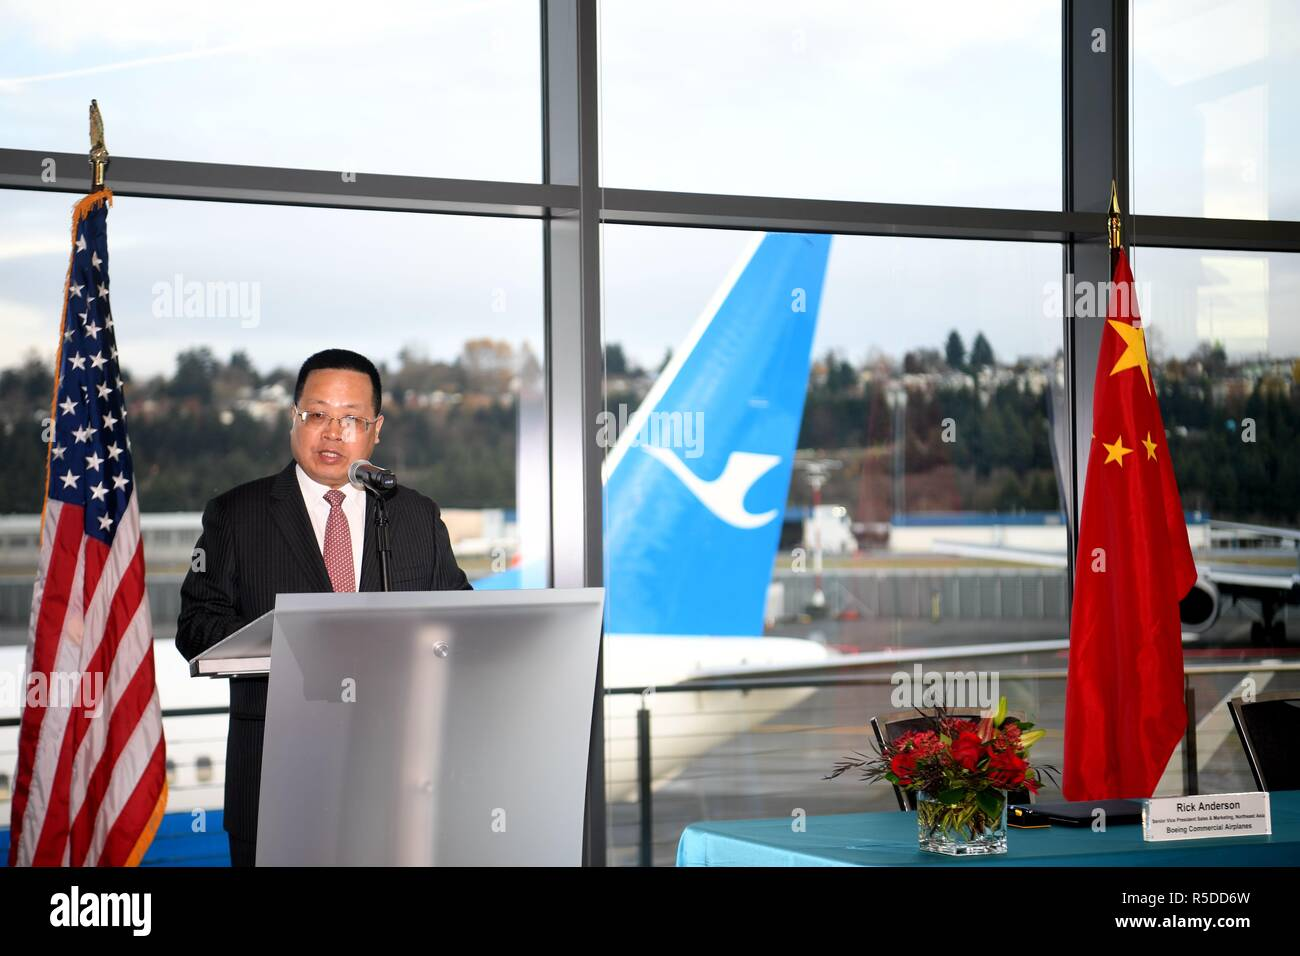 Seattle, Boeing airplane to China in Seattle. 30th Nov, 2018. Che Shanglun, chairman of Xiamen Airlines, delivers a speech during the delivering ceremony of the 2,000th Boeing airplane to China in Seattle, the United States on Nov. 30, 2018. Top U.S. aircraft manufacturer Boeing Company on Friday delivered its 2,000th airplane to China, which is a milestone for the U.S. aircraft maker in the world's largest commercial aviation market. Credit: Wu Xiaoling/Xinhua/Alamy Live News - Stock Image